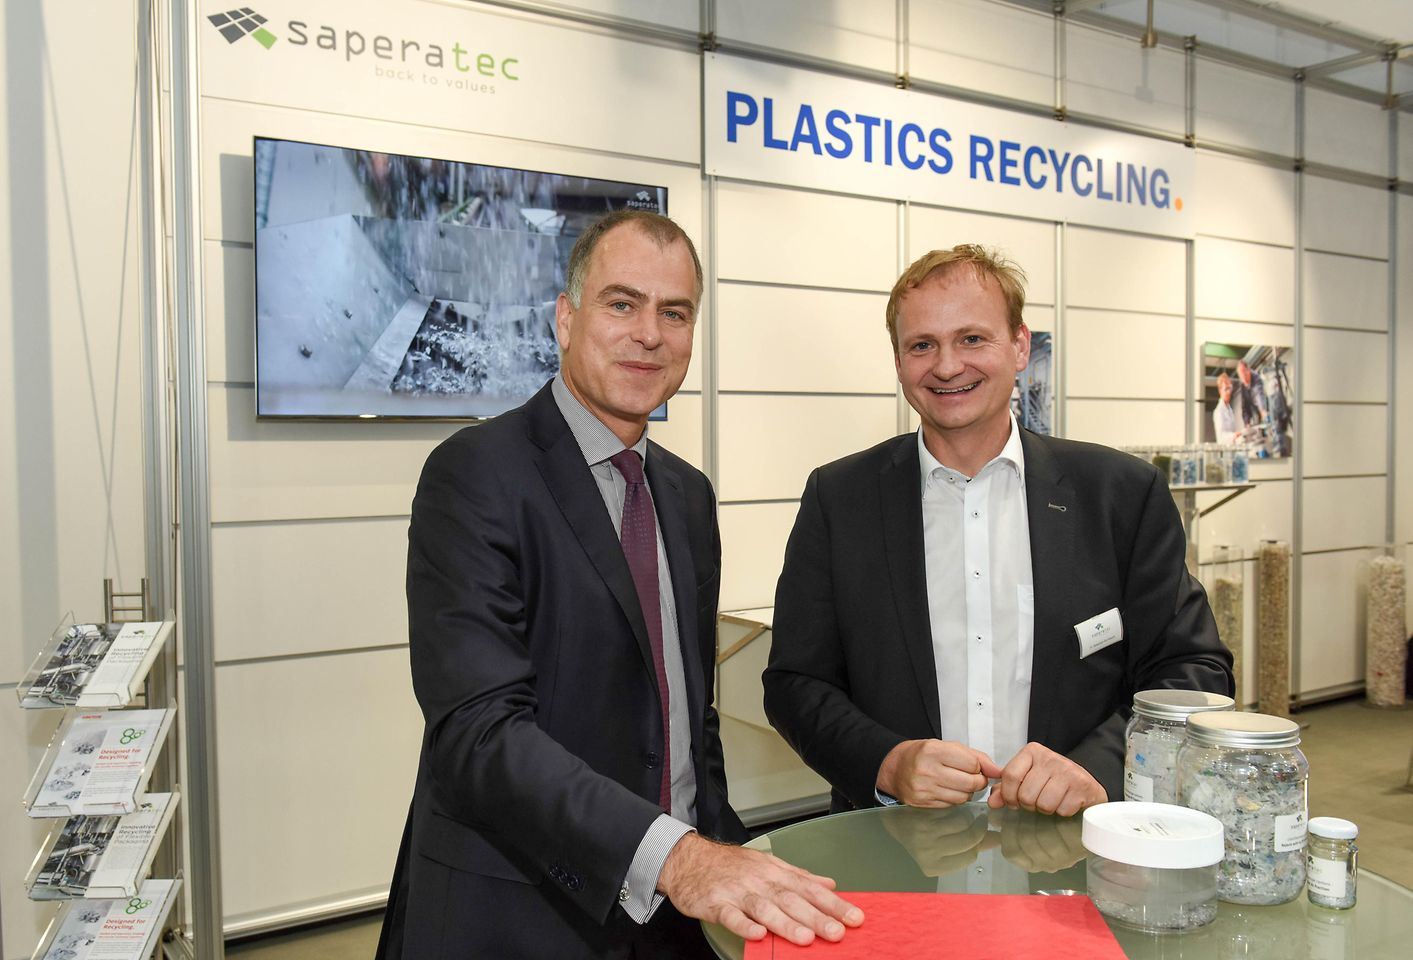 Jan-Dirk Auris, Executive Vice President Adhesive Technologies, met with Saperatec GmbH founder and CEO Dr. Sebastian Kernbaum at K2019 in Düsseldorf.